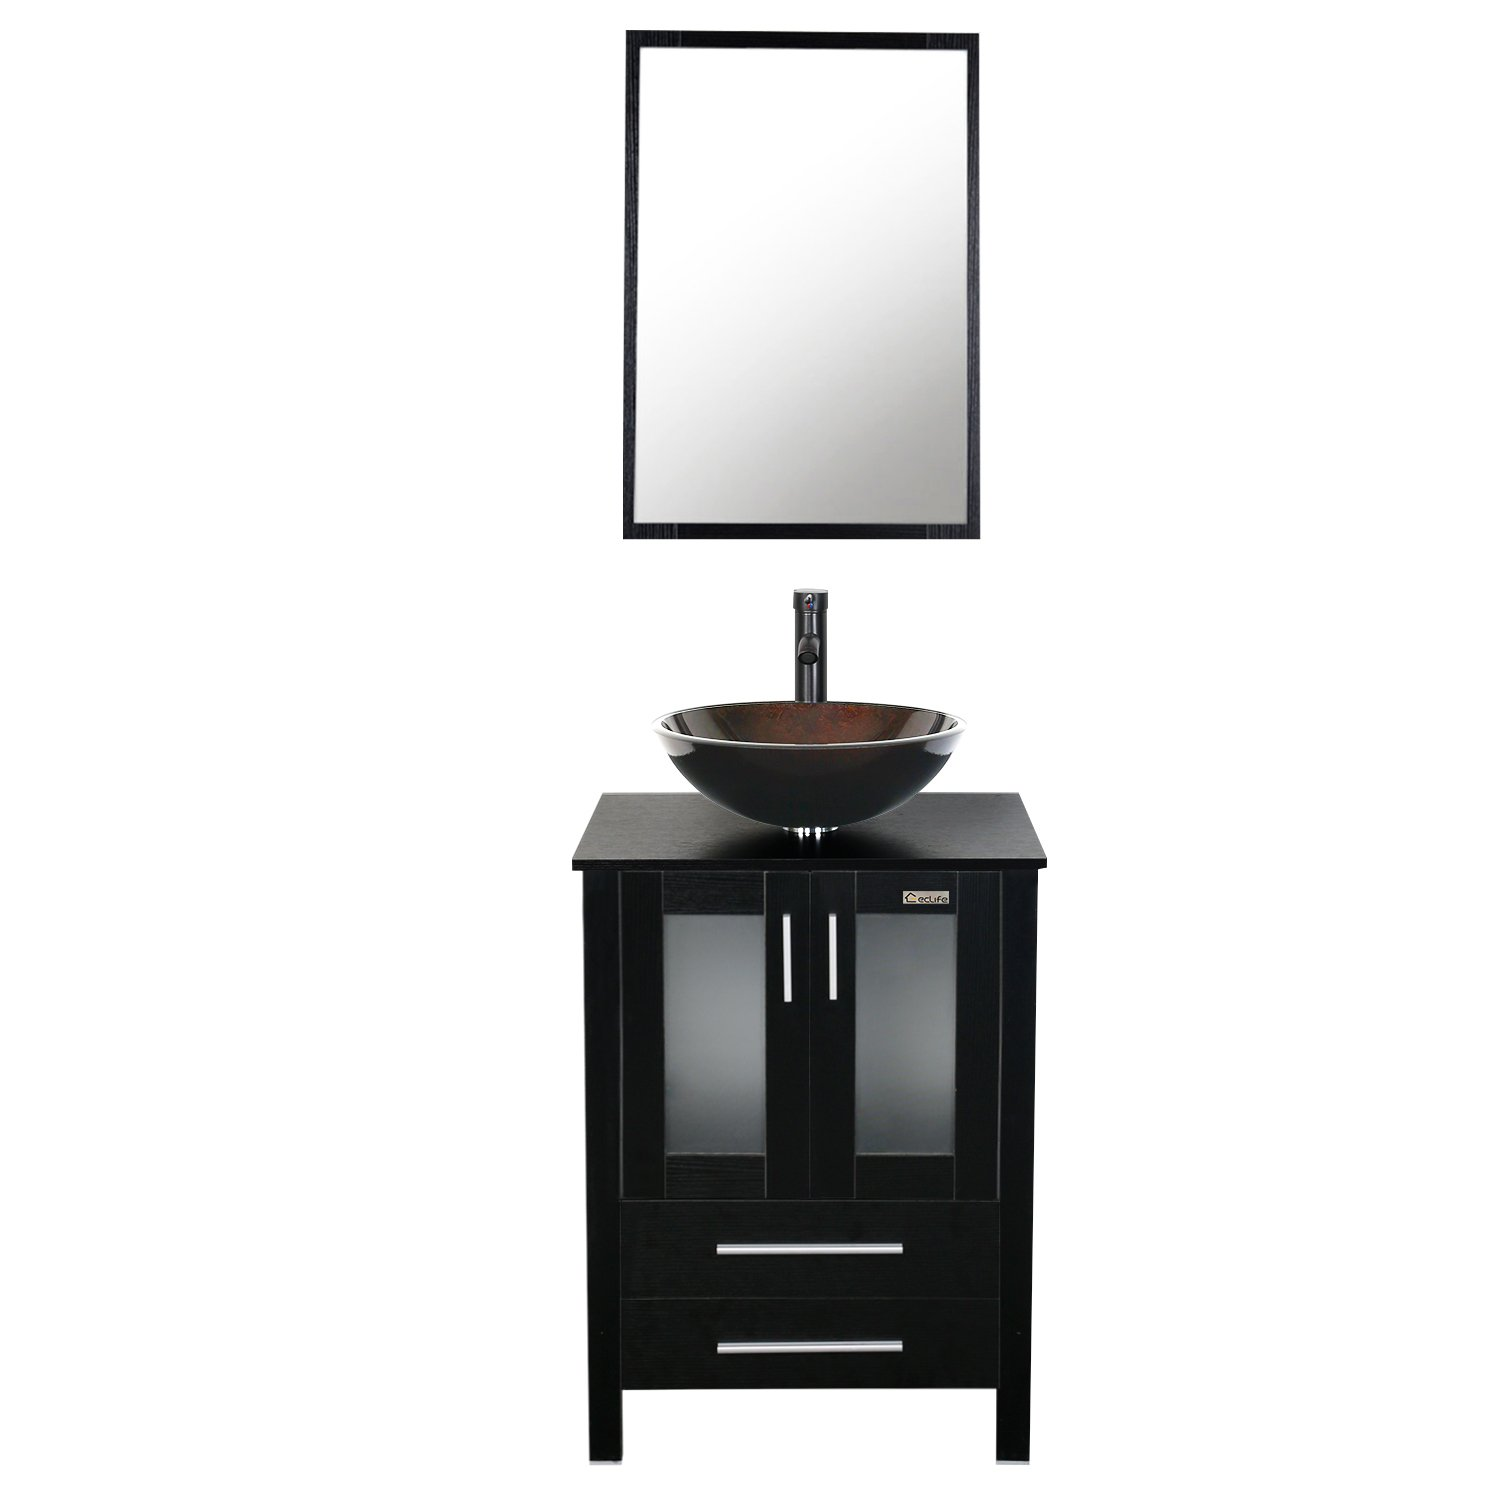 eclife 24 inch bathroom vanity combo modern mdf cabinet with vanity mirror tempered glass counter top - Bathroom Cabinets Sink